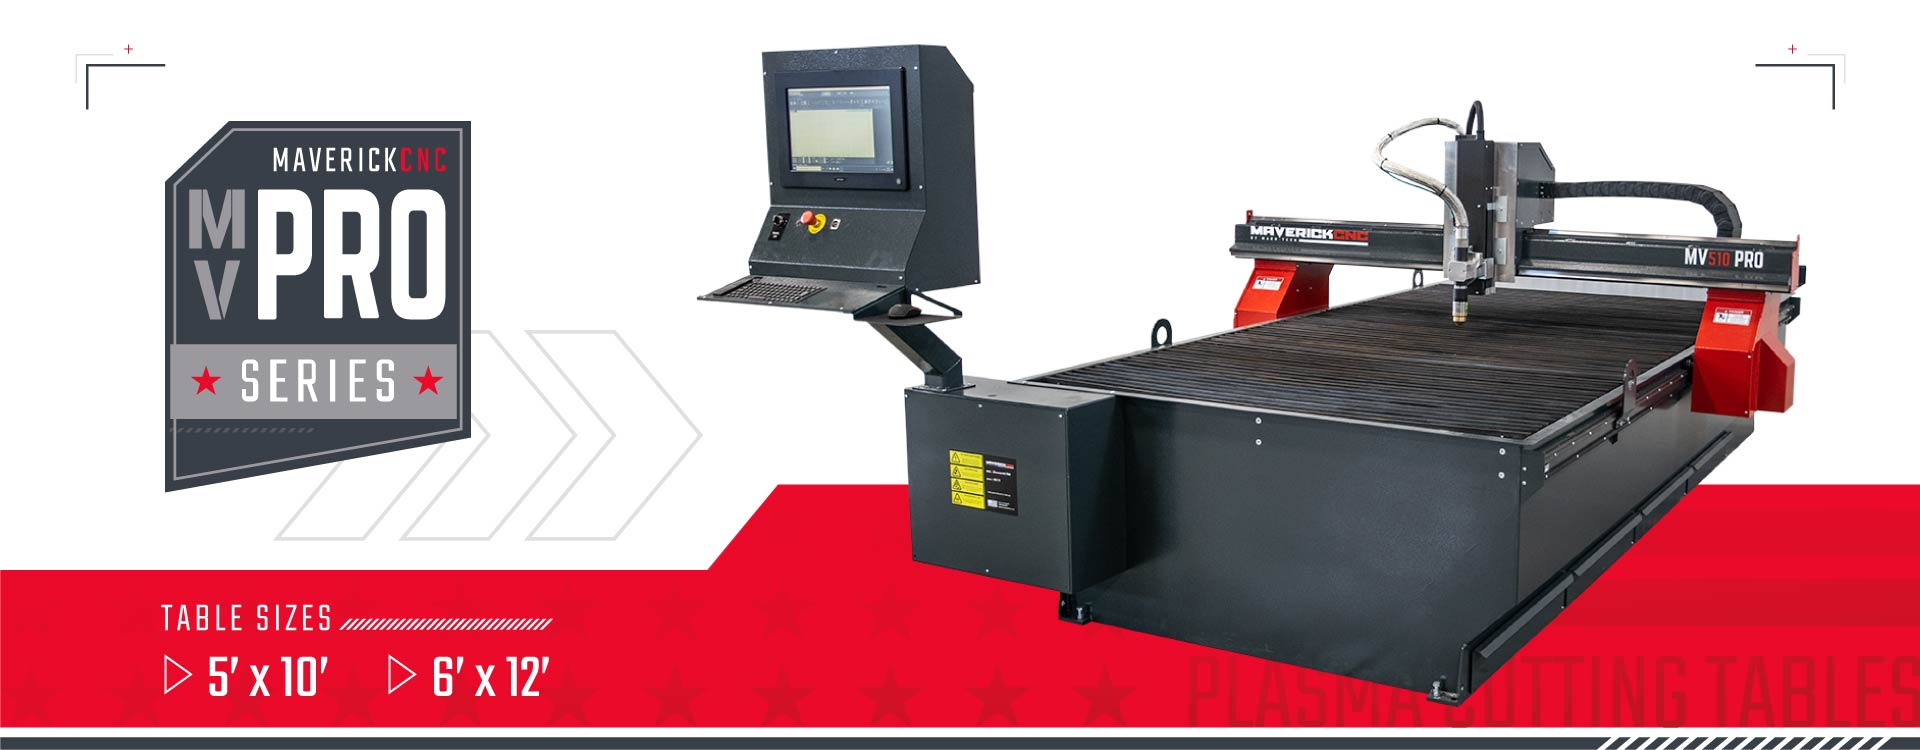 MaverickCNC MVPRO Plasma Cutting Tables